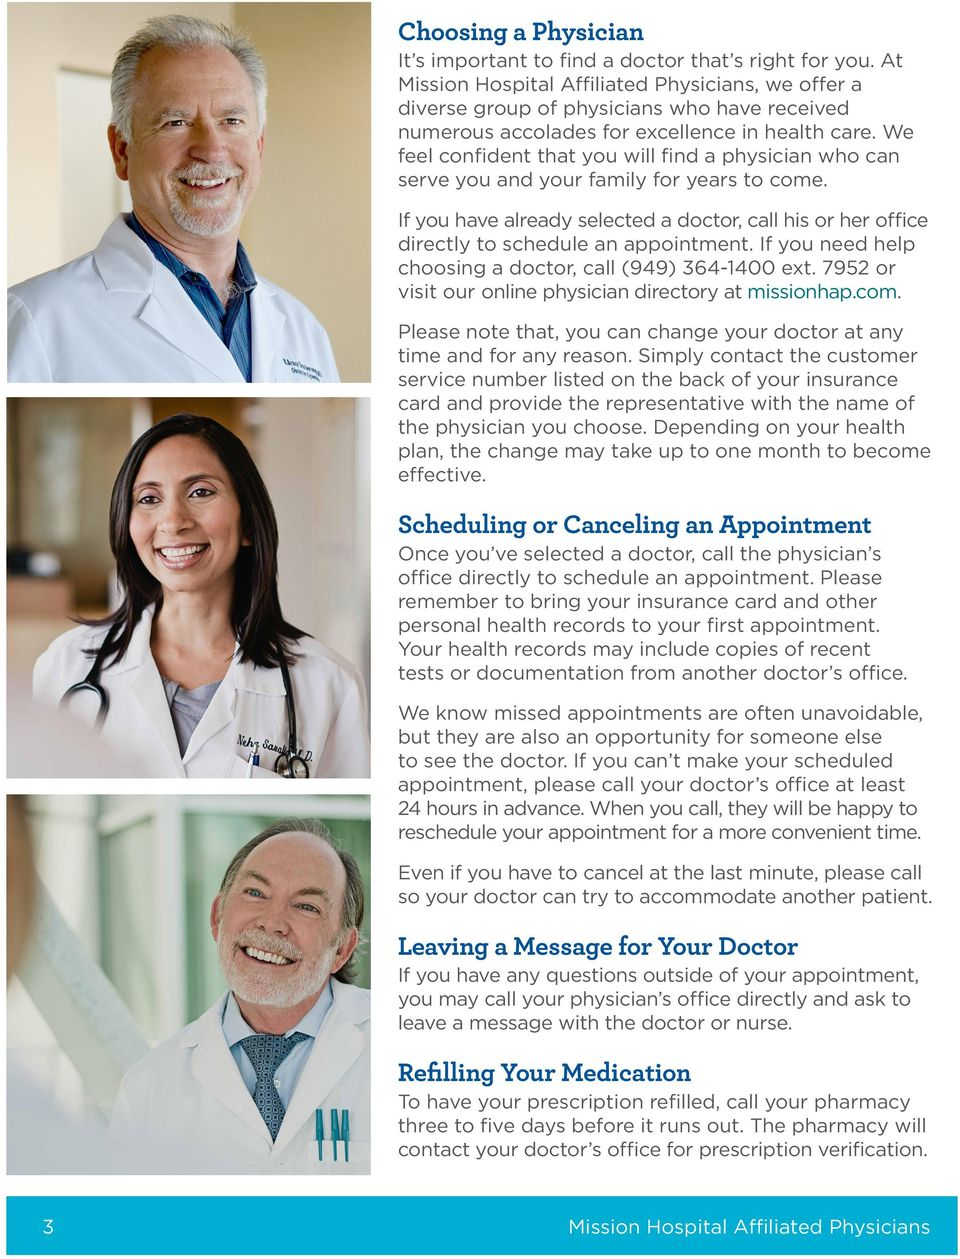 We feel confident that you will find a physician who can serve you and your family for years to come. If you have already selected a doctor, call his or her office directly to schedule an appointment.